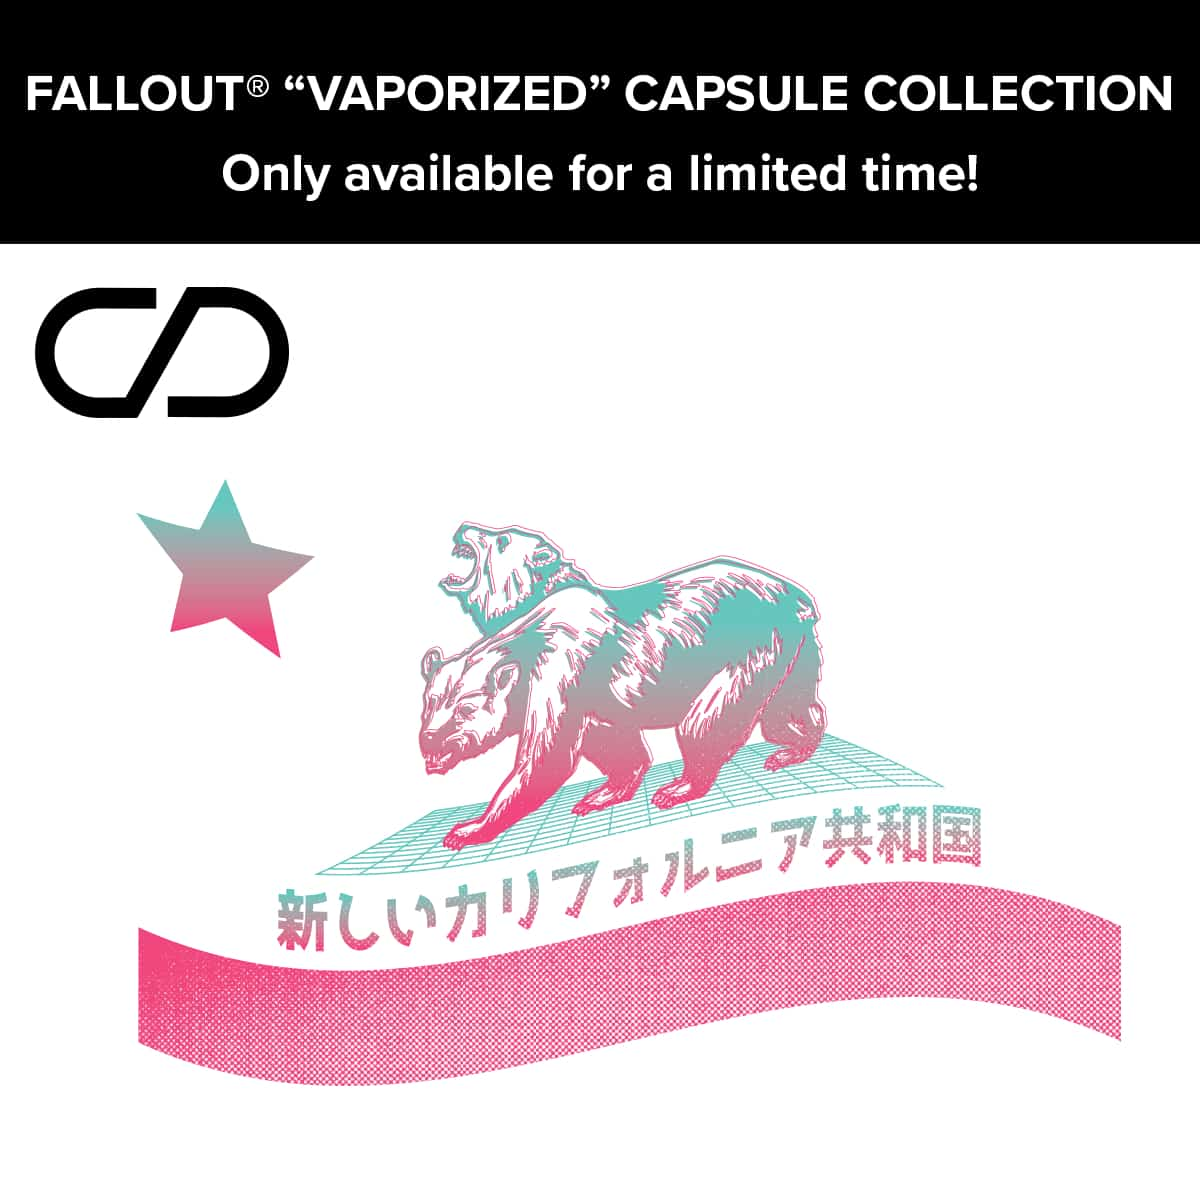 The Fallout Vaporized Capsule Collection is Here! 3